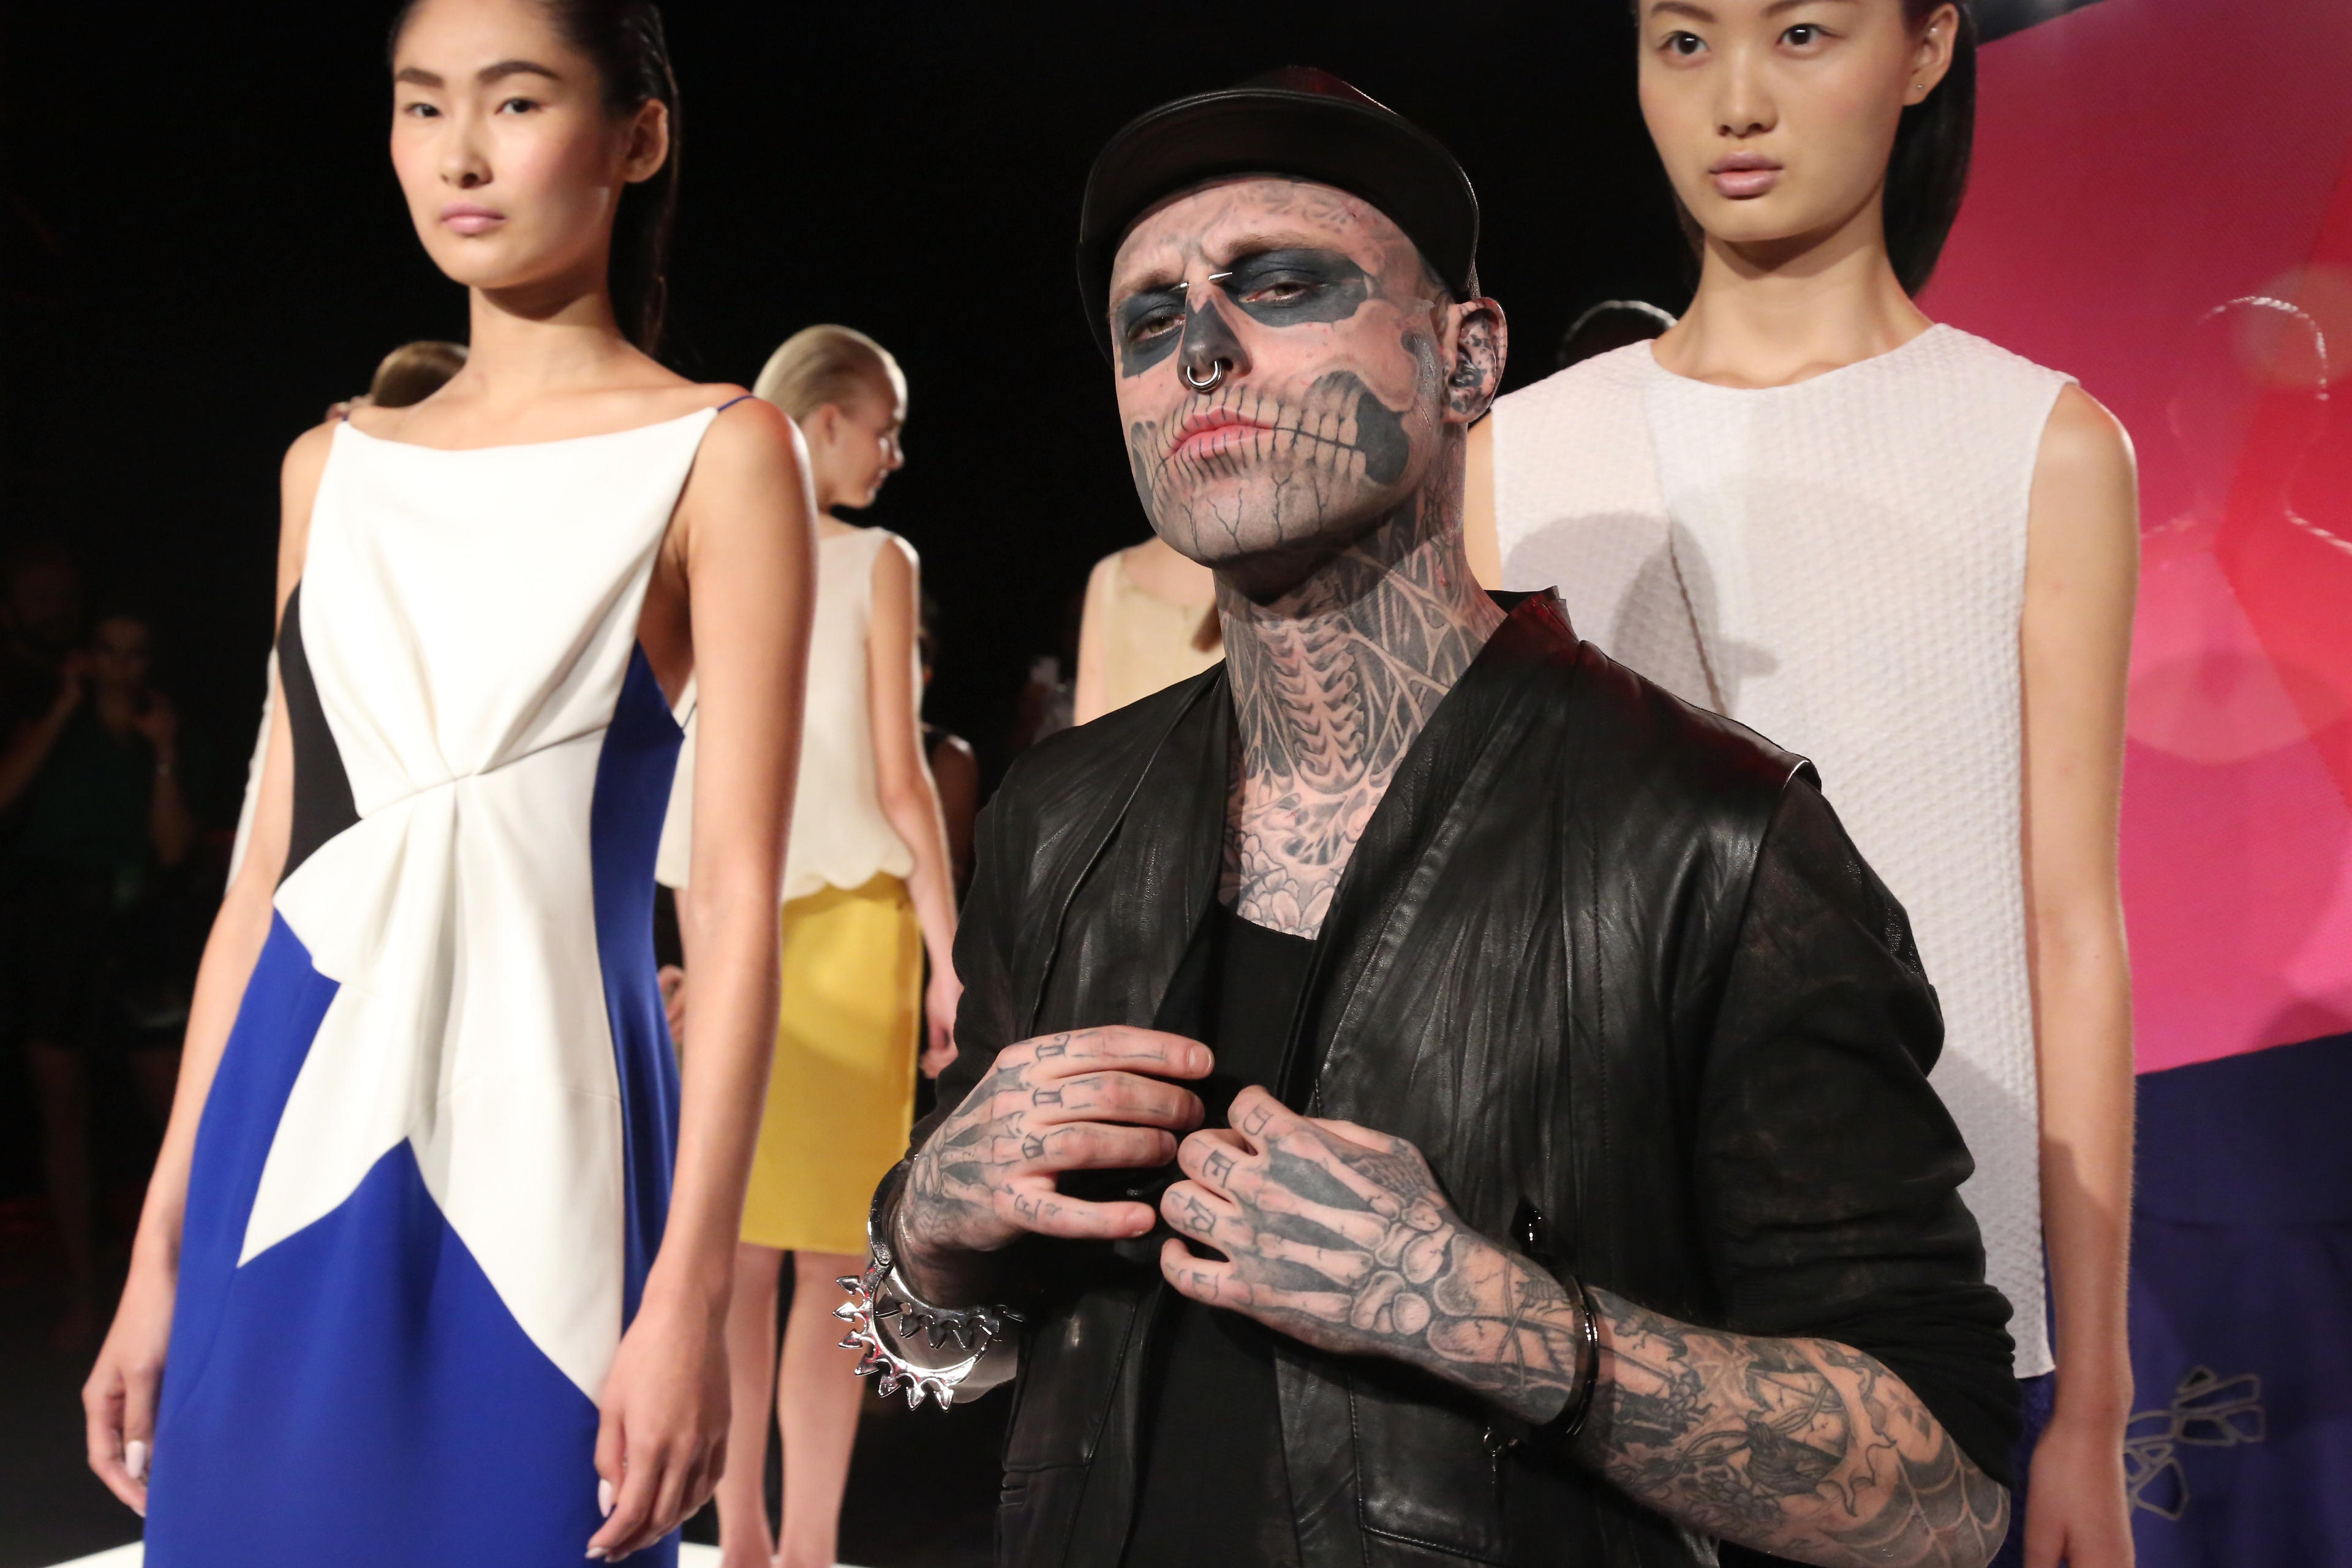 rick genest zombie boy model and lady gaga collaborator is dead